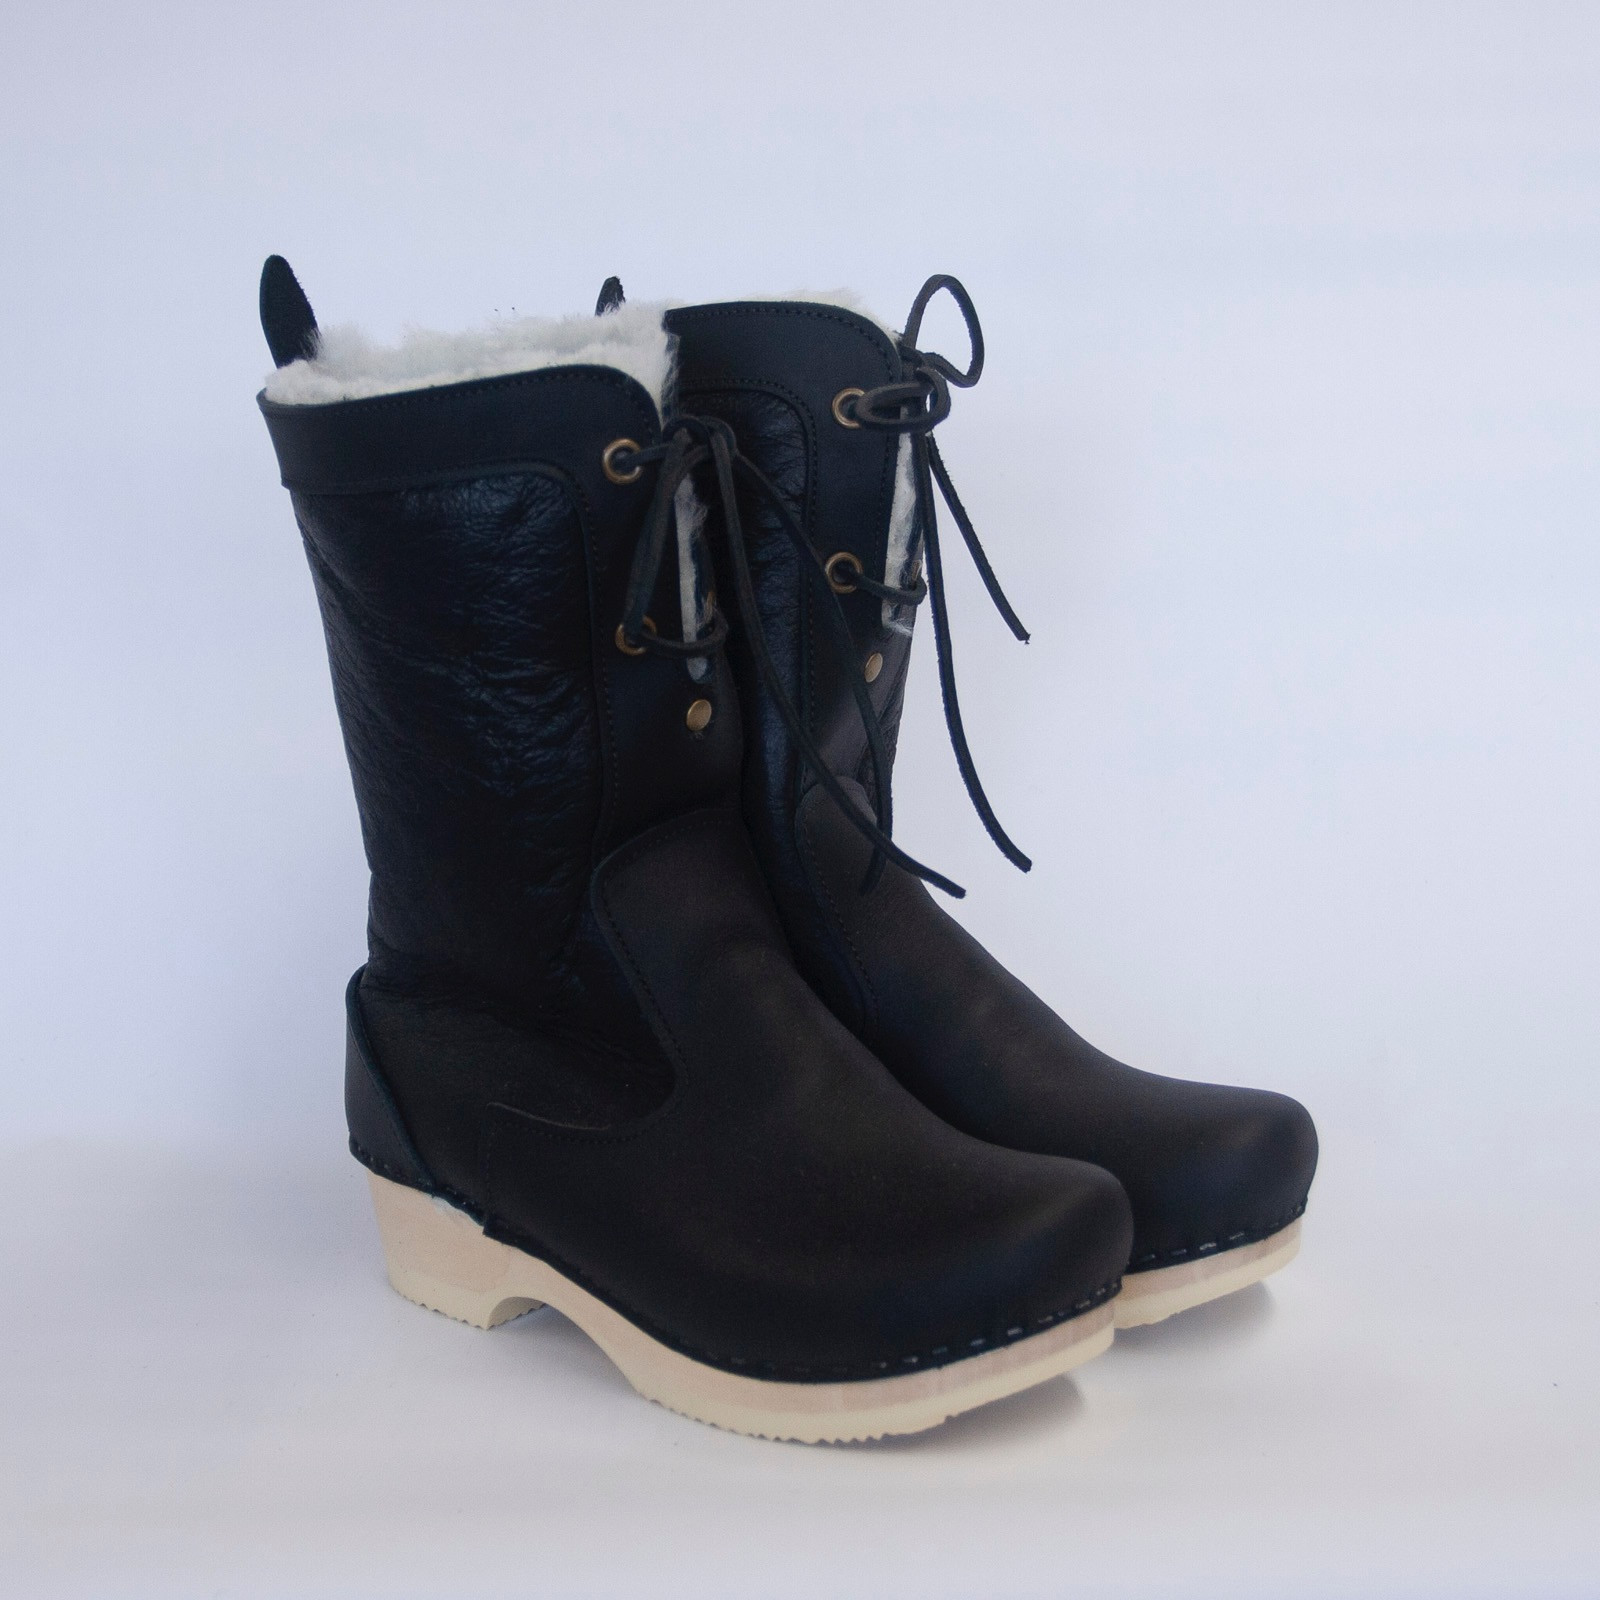 Black on White Nappa - Lace Up Shearling Clog Boots